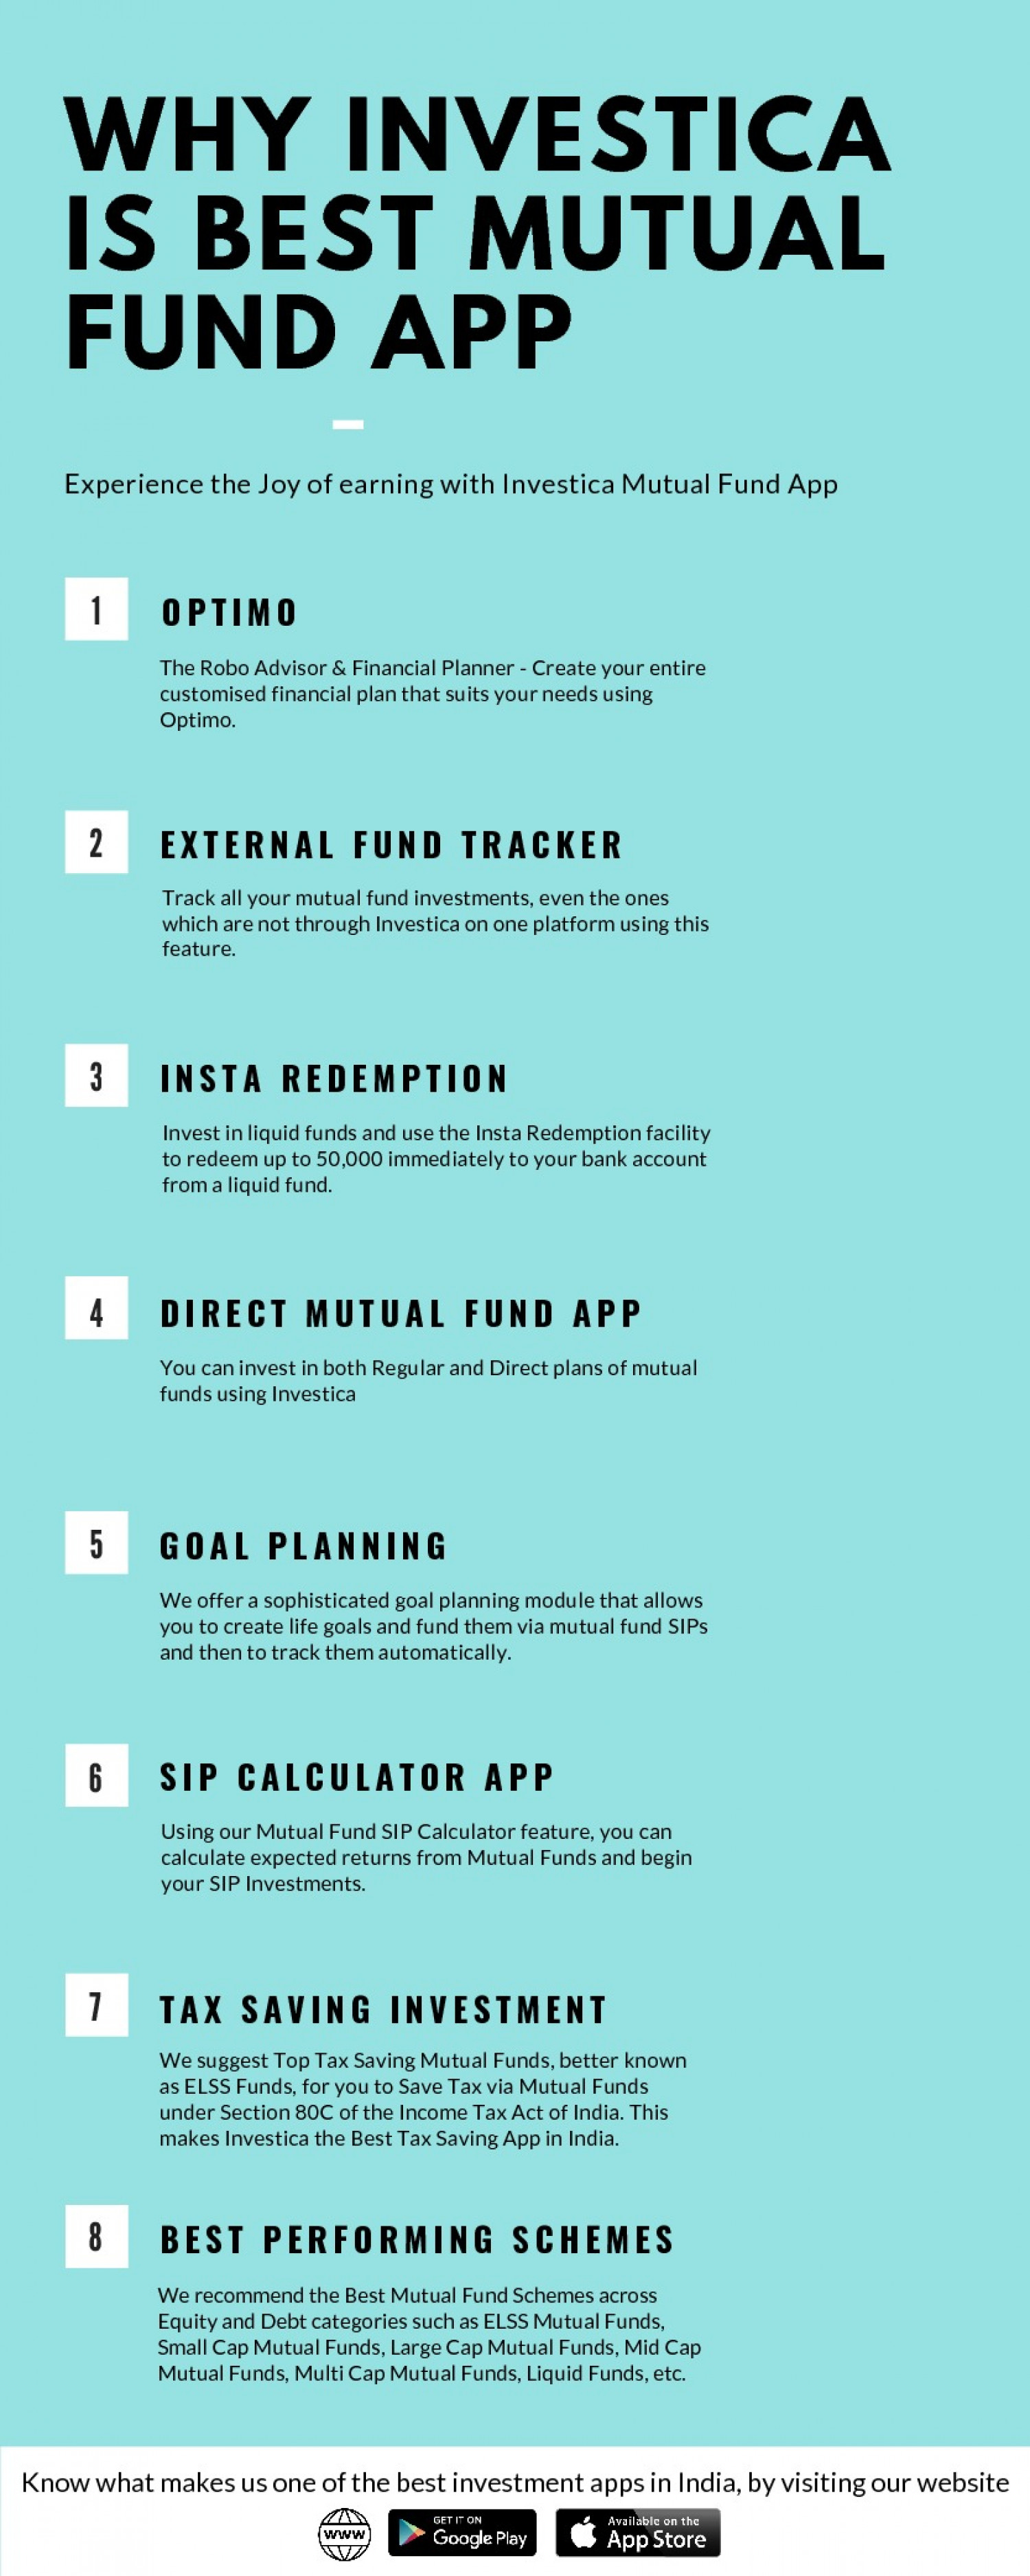 Why Investica is best Mutual Fund App in India Infographic